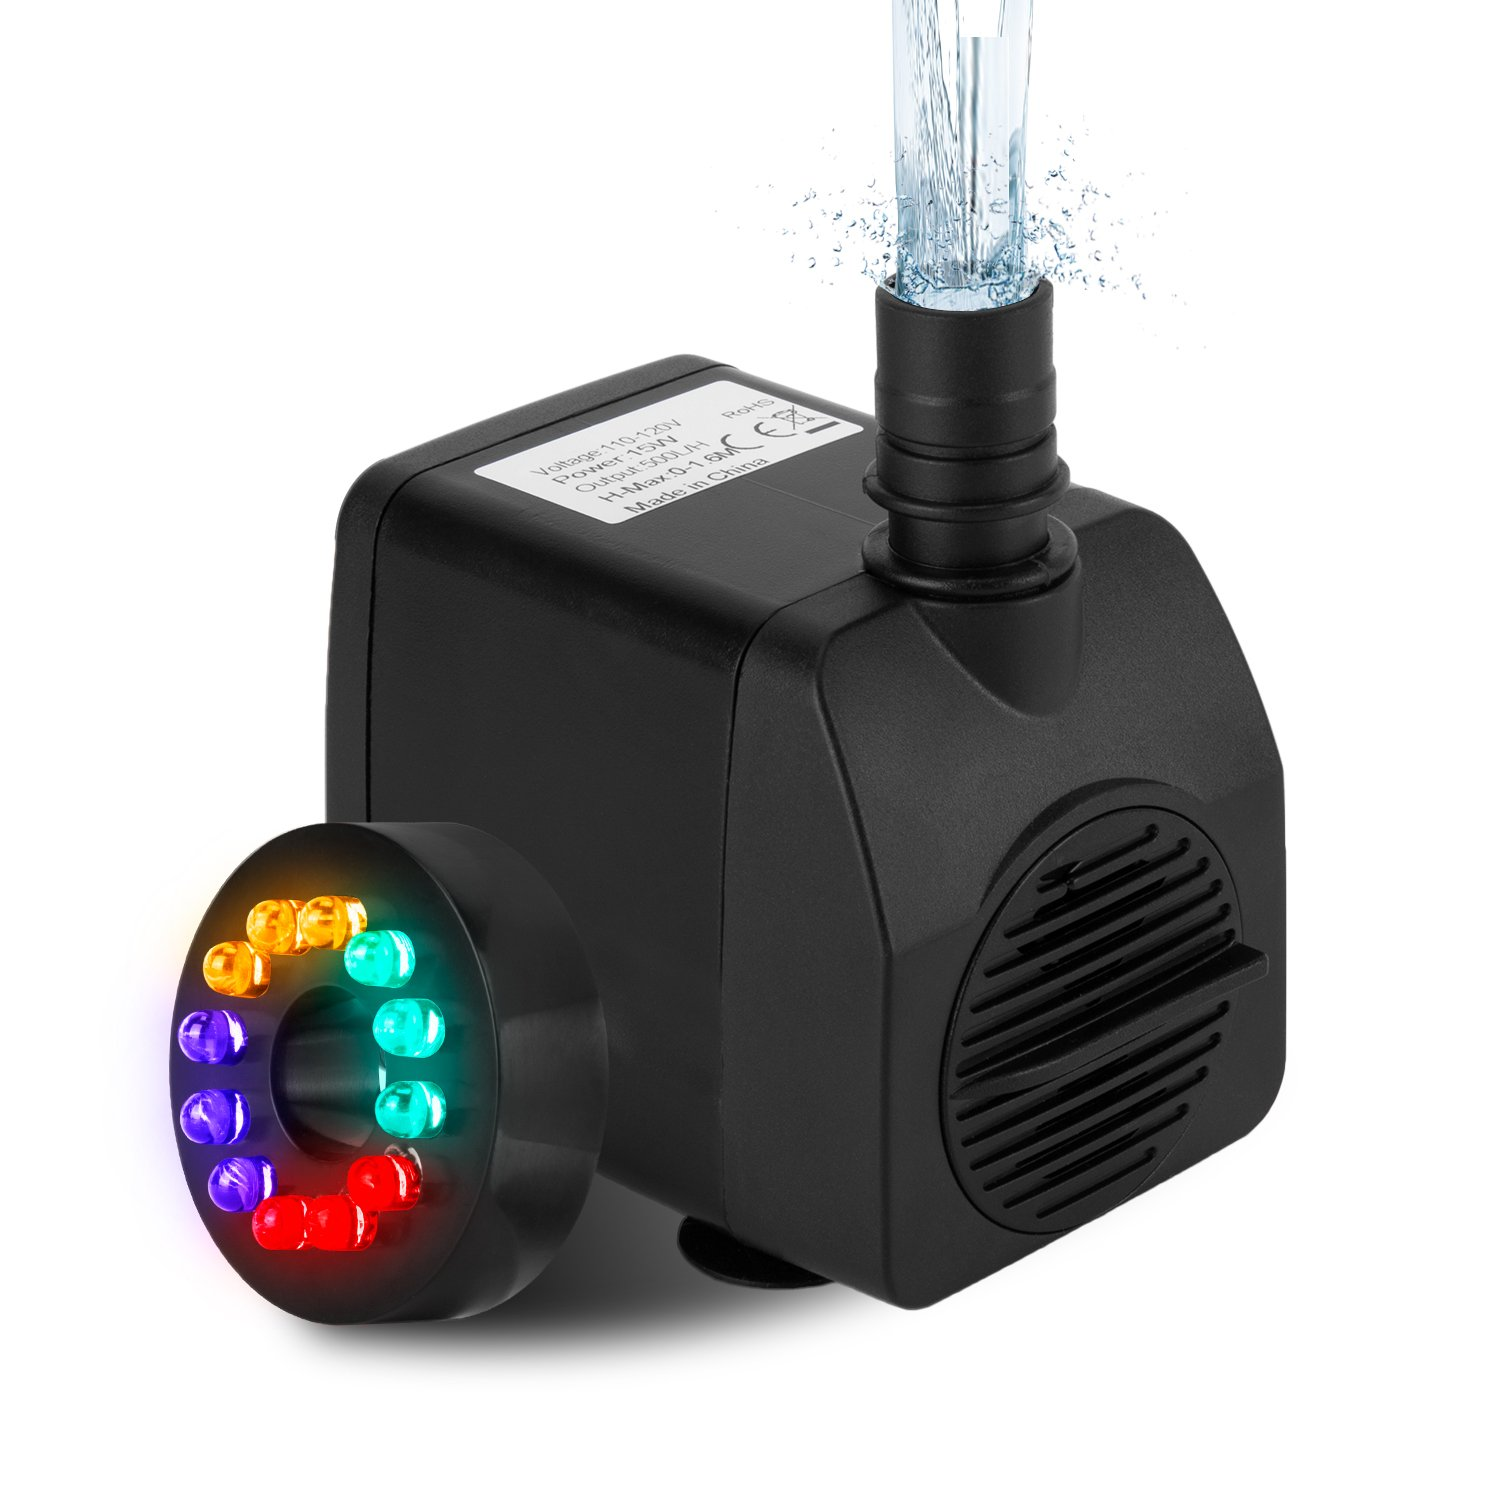 Fannel 220 GPH (800L/H, 15W) Submersible Water Pump for Fish Tank, Aquarium, Fountain, Pond, Small Silent 12 LED Colorful Pump Lights with 2 Nozzles, 6 Feet Power Cord (Black one)